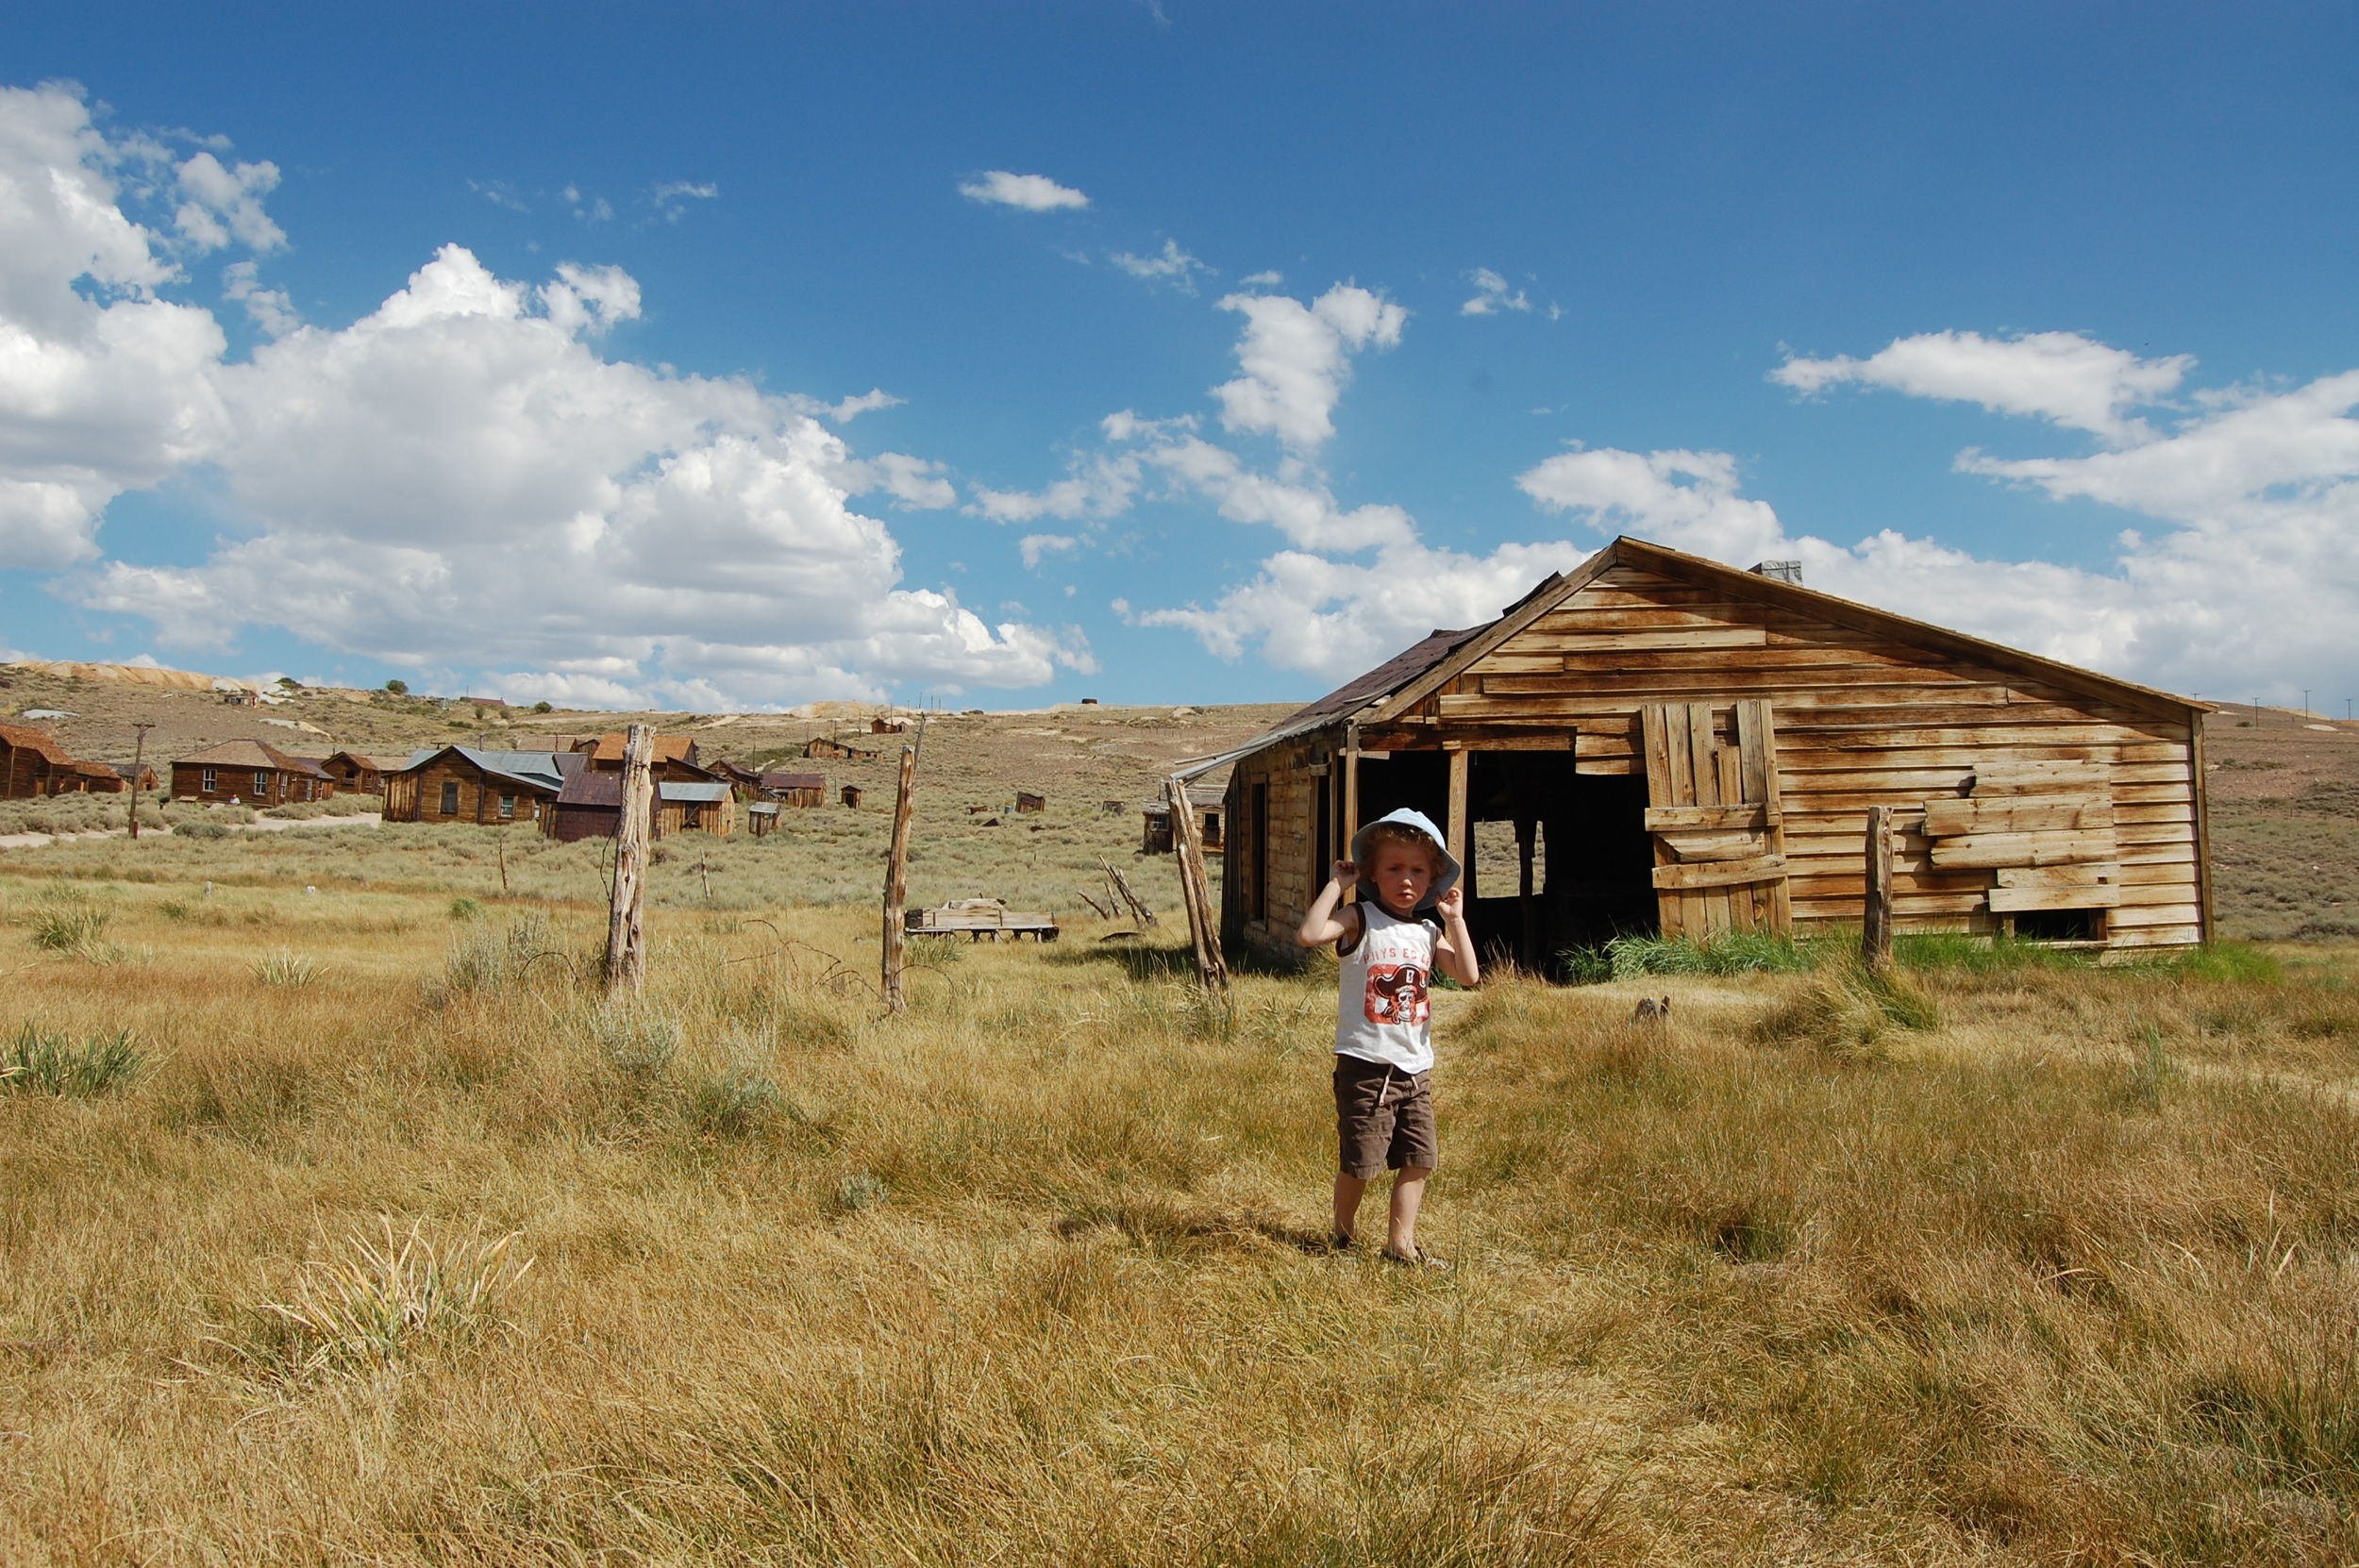 The abandoned mining town of Bodie, California